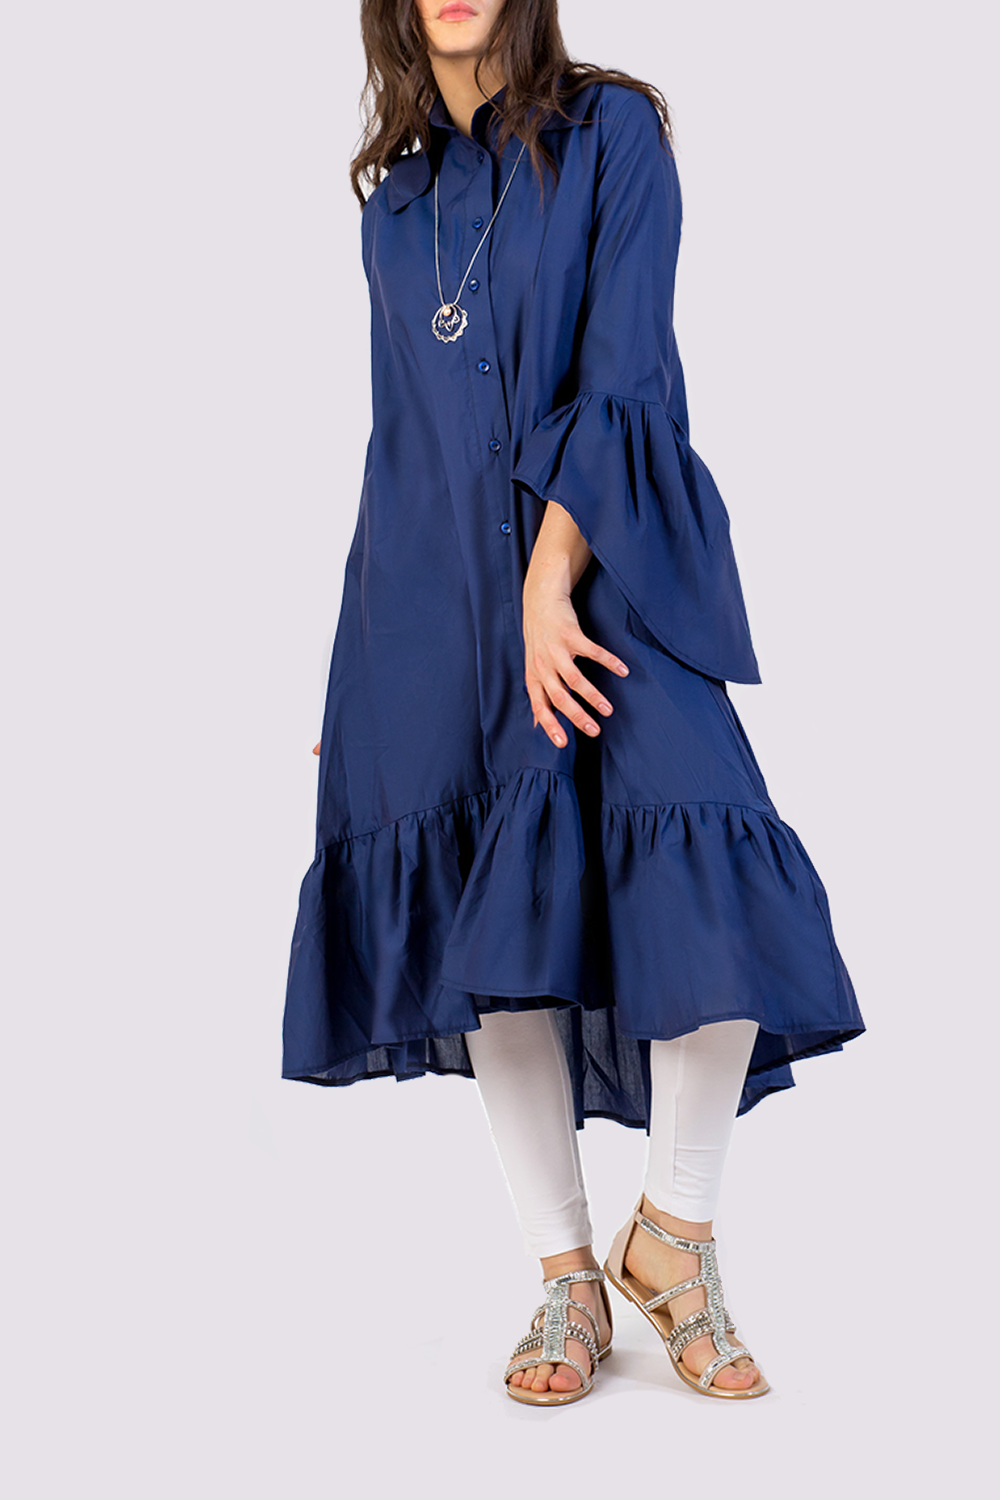 Navy oversized cotton shirtdress by Attitude157